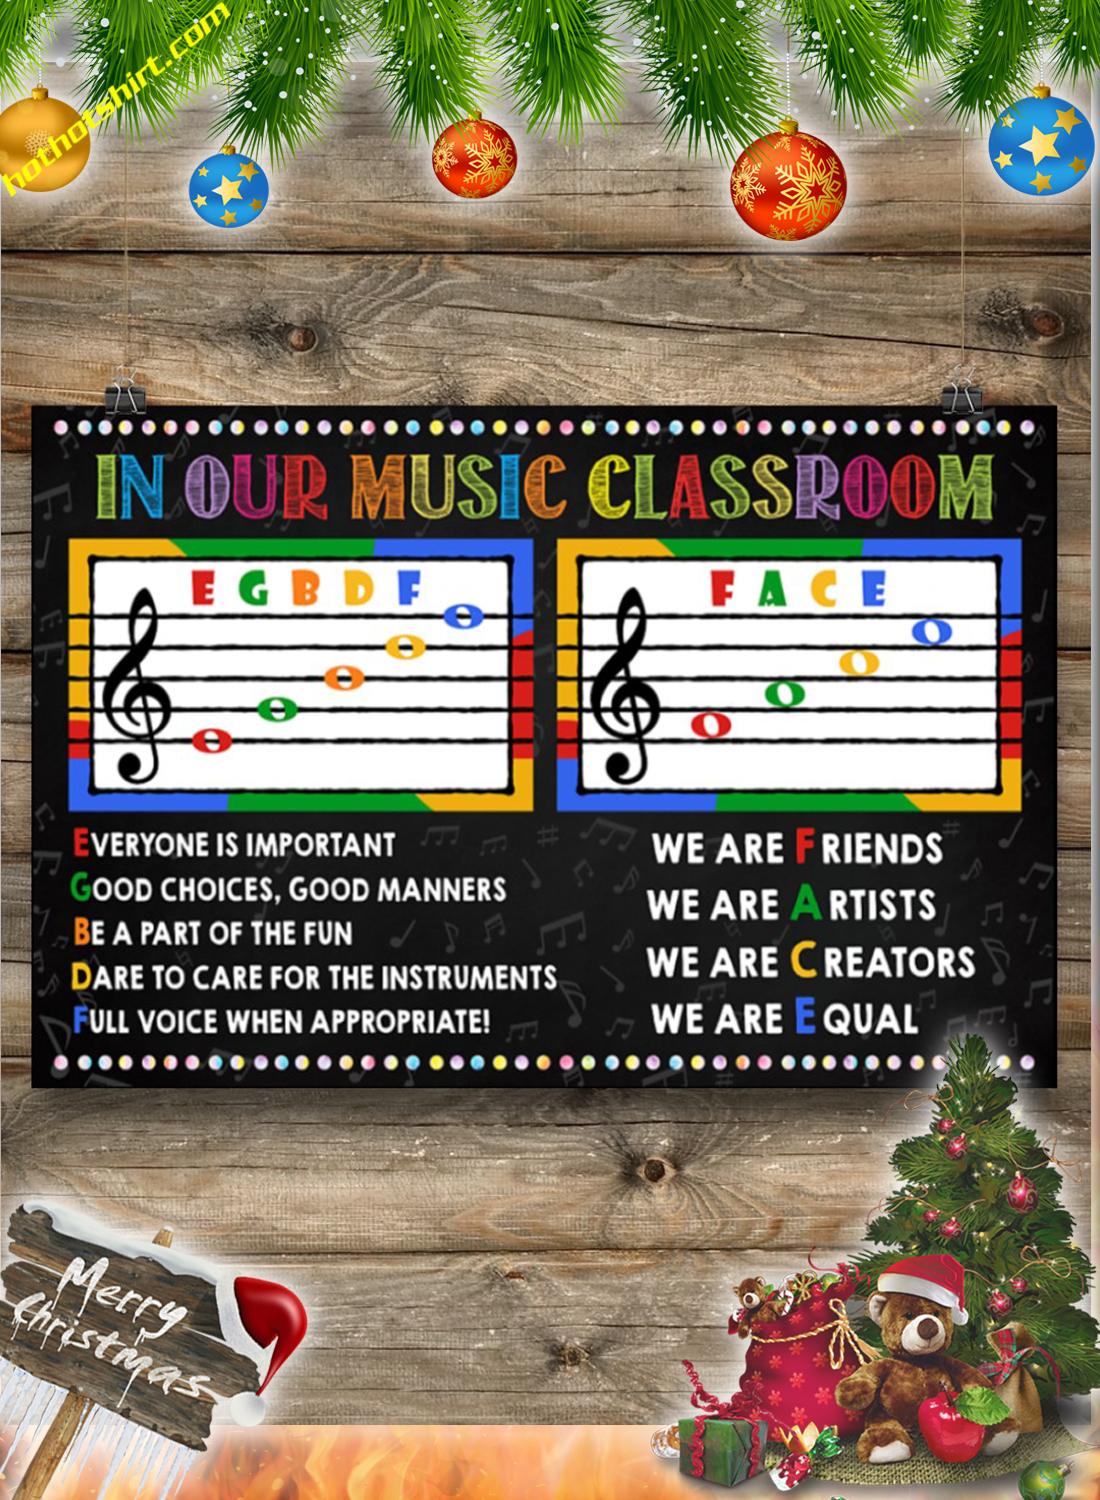 In our music classroom poster 3